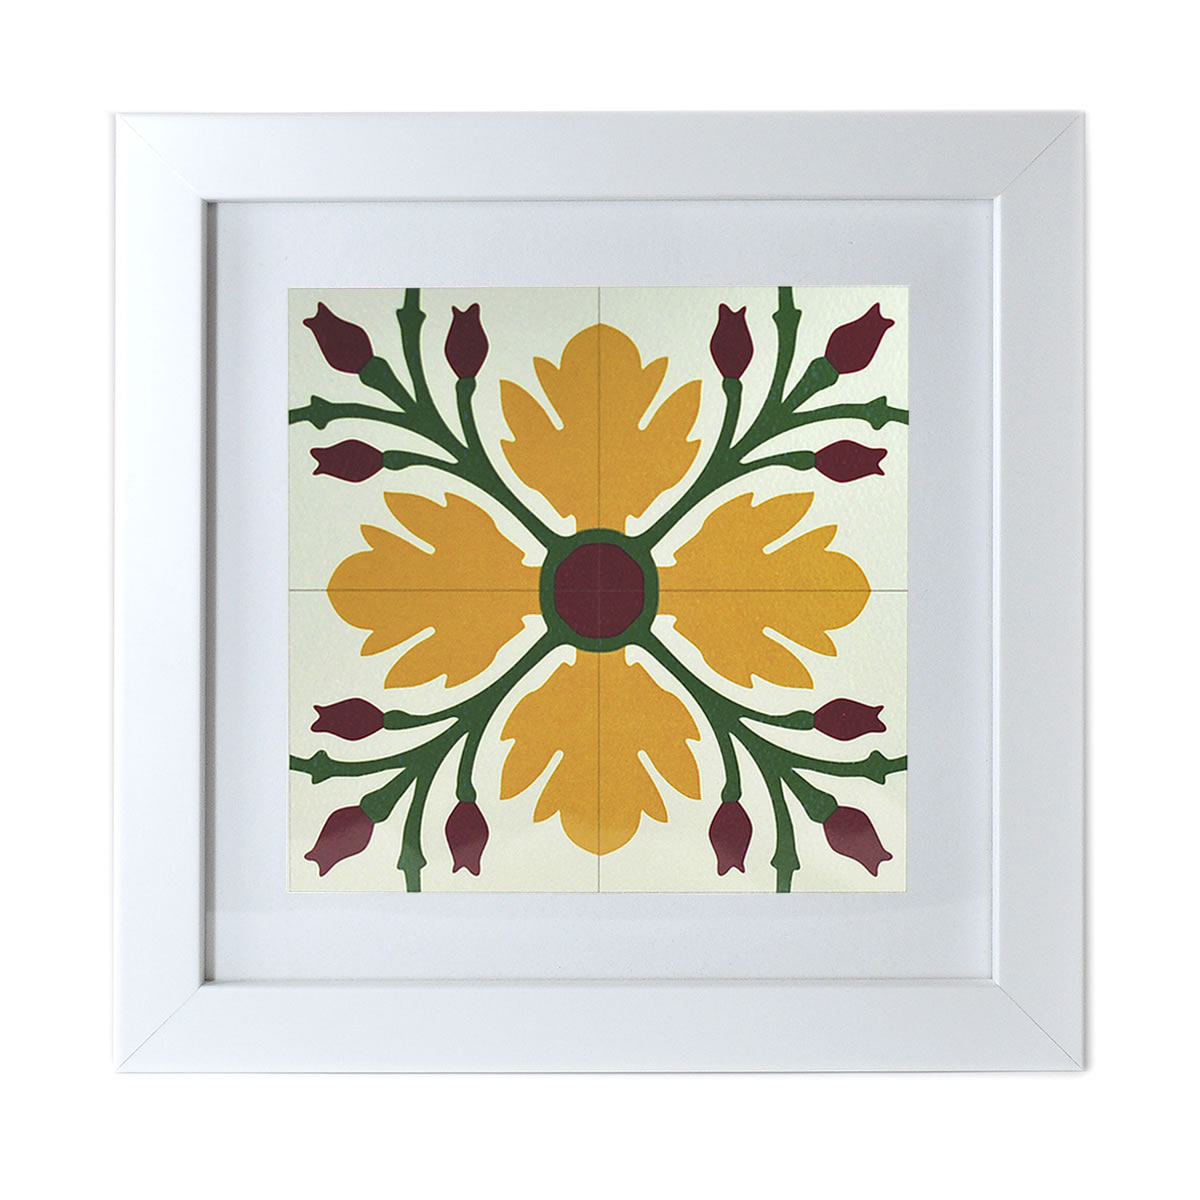 Malta Tile Print, framed, pattern no.15